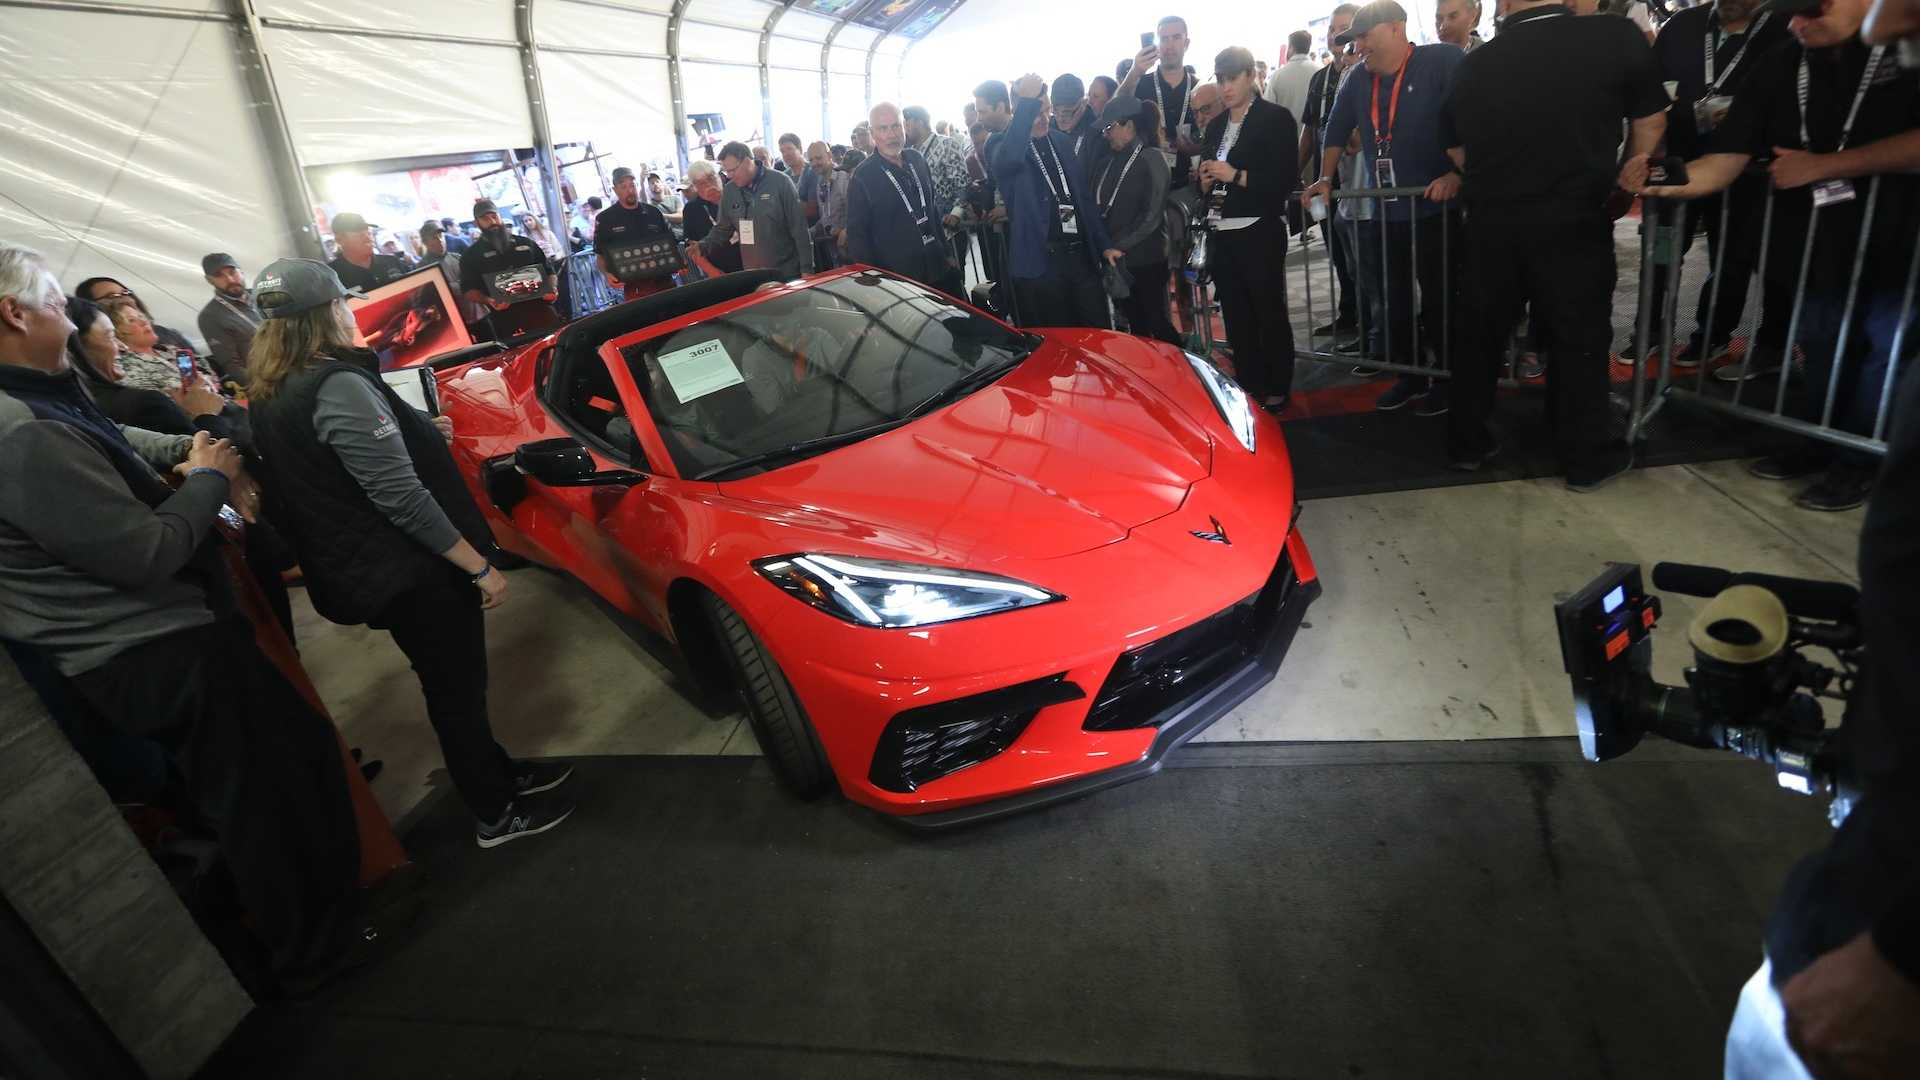 2020_Chevrolet_Corvette_Stingray_VIN_001_Sold_0000